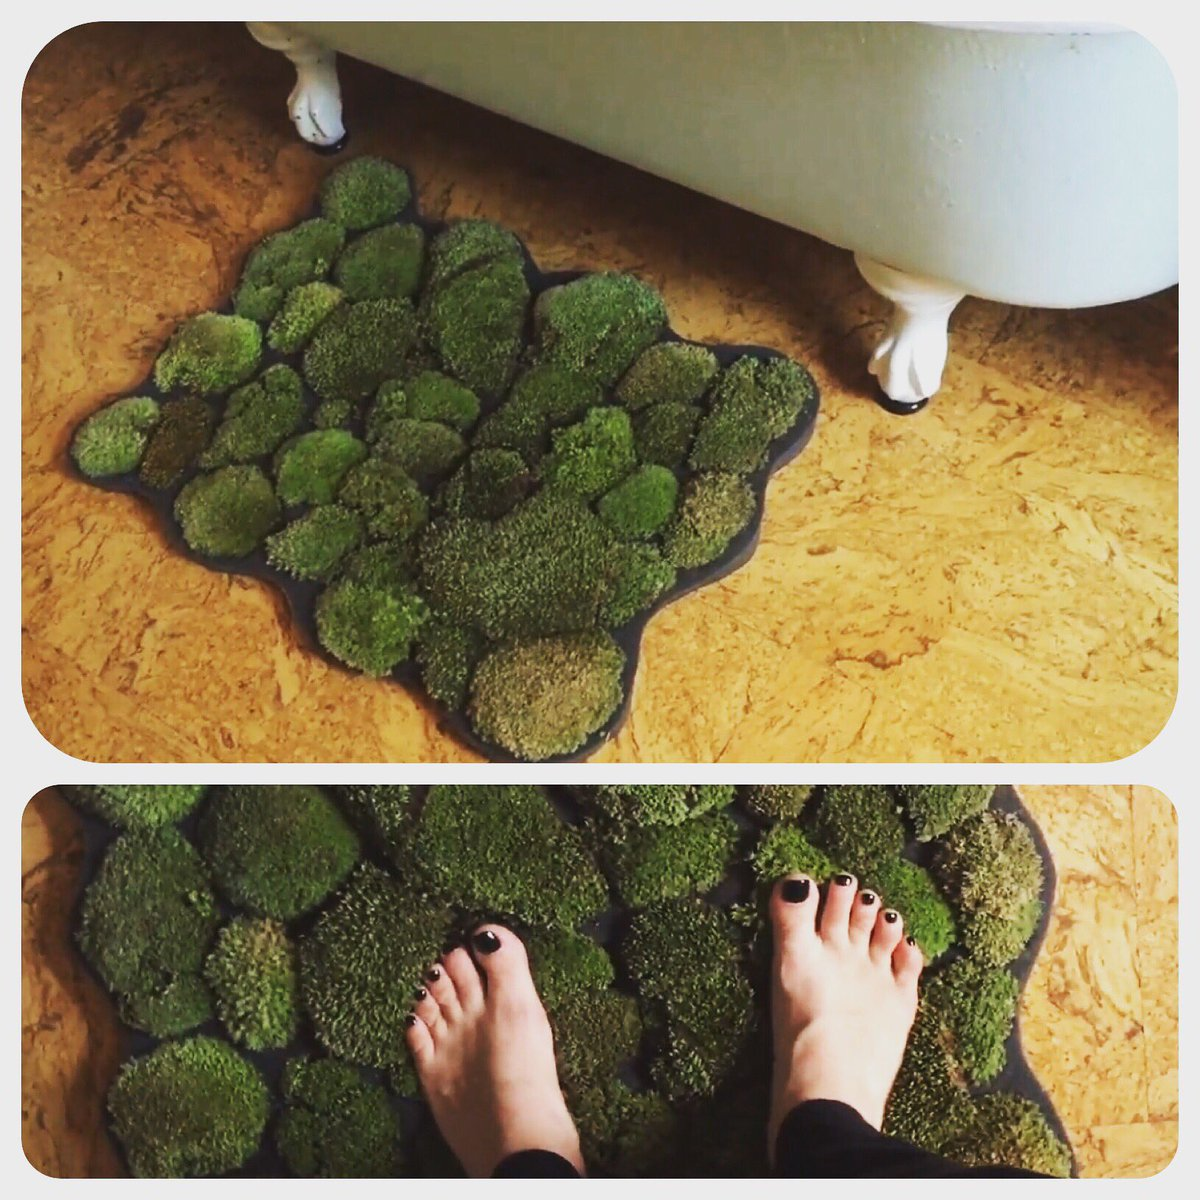 Threadbanger On Twitter The Mat The Myth The Legend Diy Moss Bathmat Alienplant Pleasekittiesdonteatit Https T Co Bj5yexkjvw